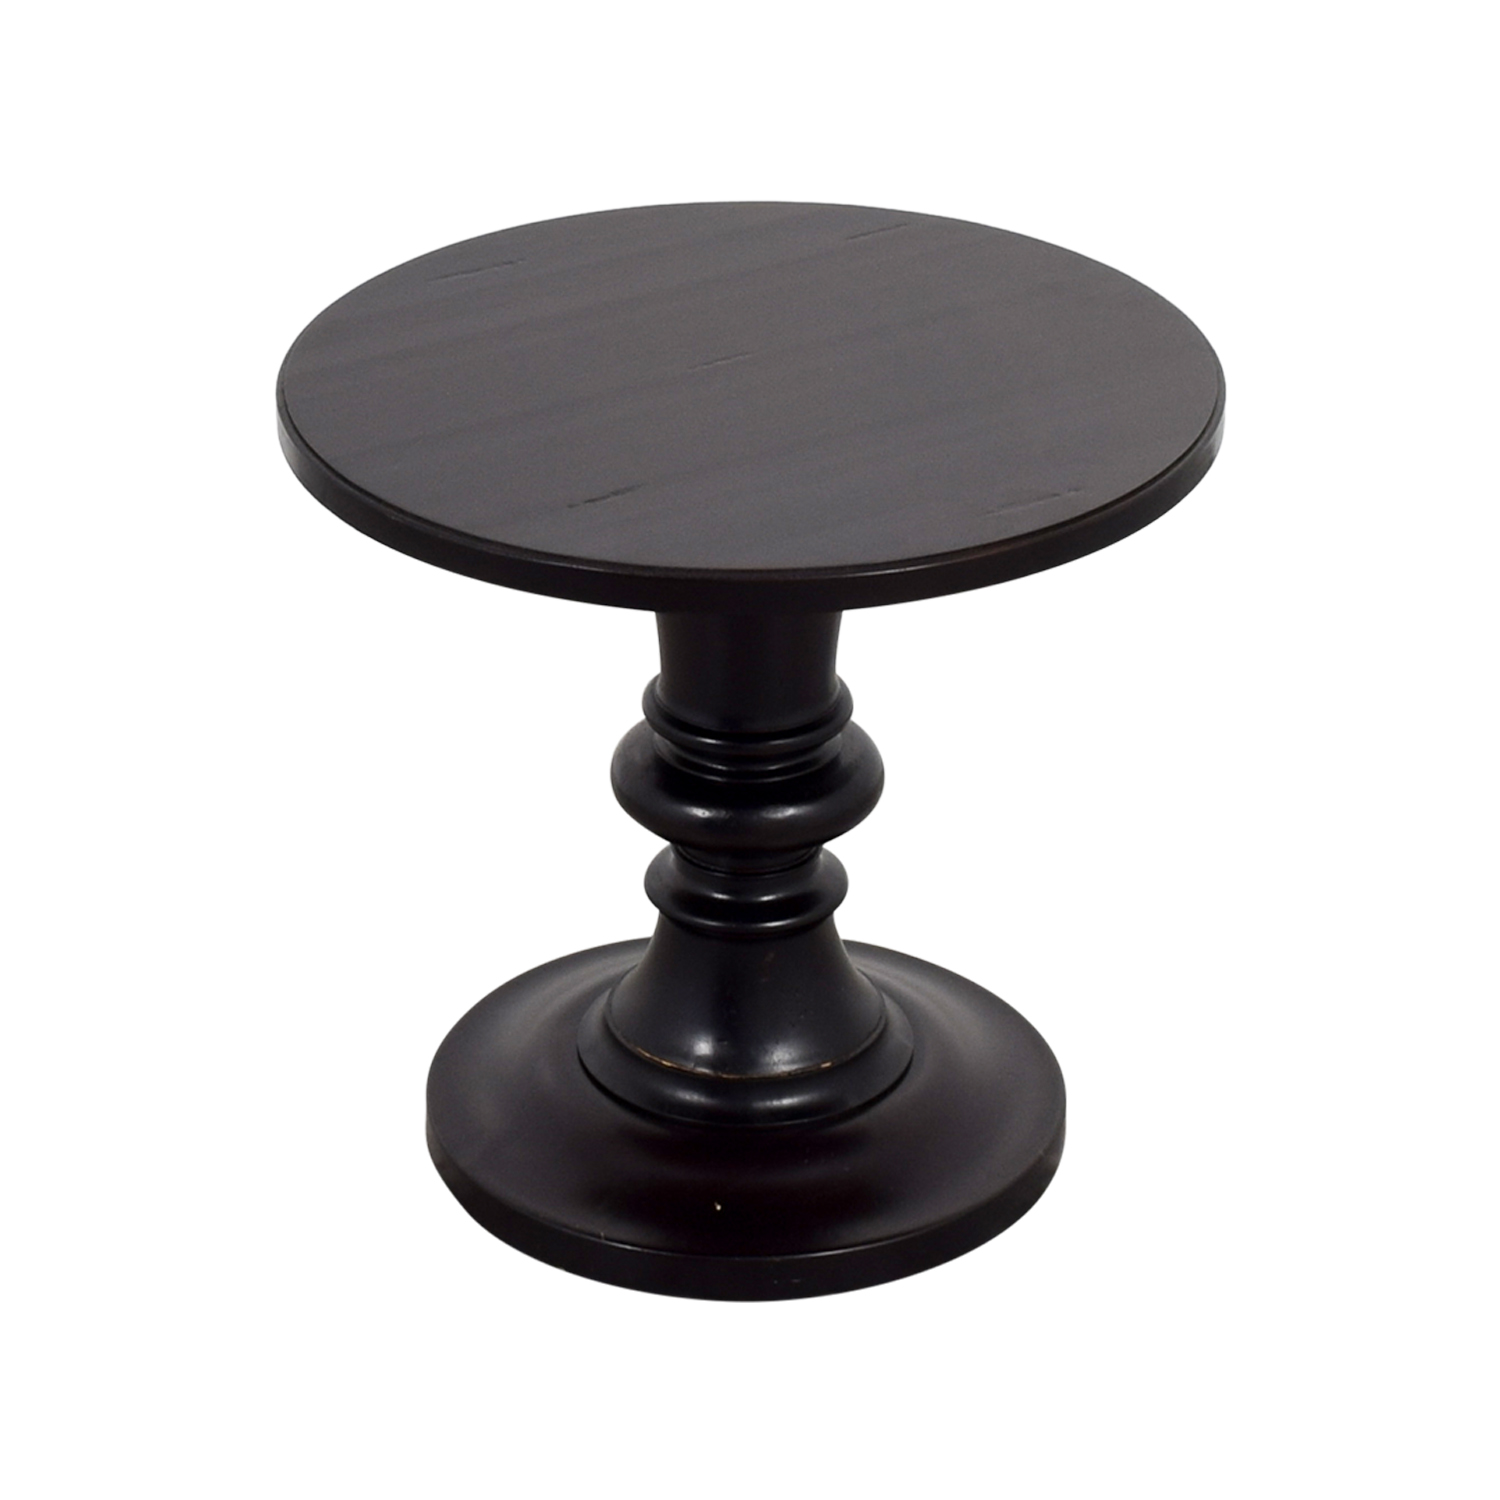 shop Pottery Barn Pottery Barn Rustic Pedestal Accent Table online